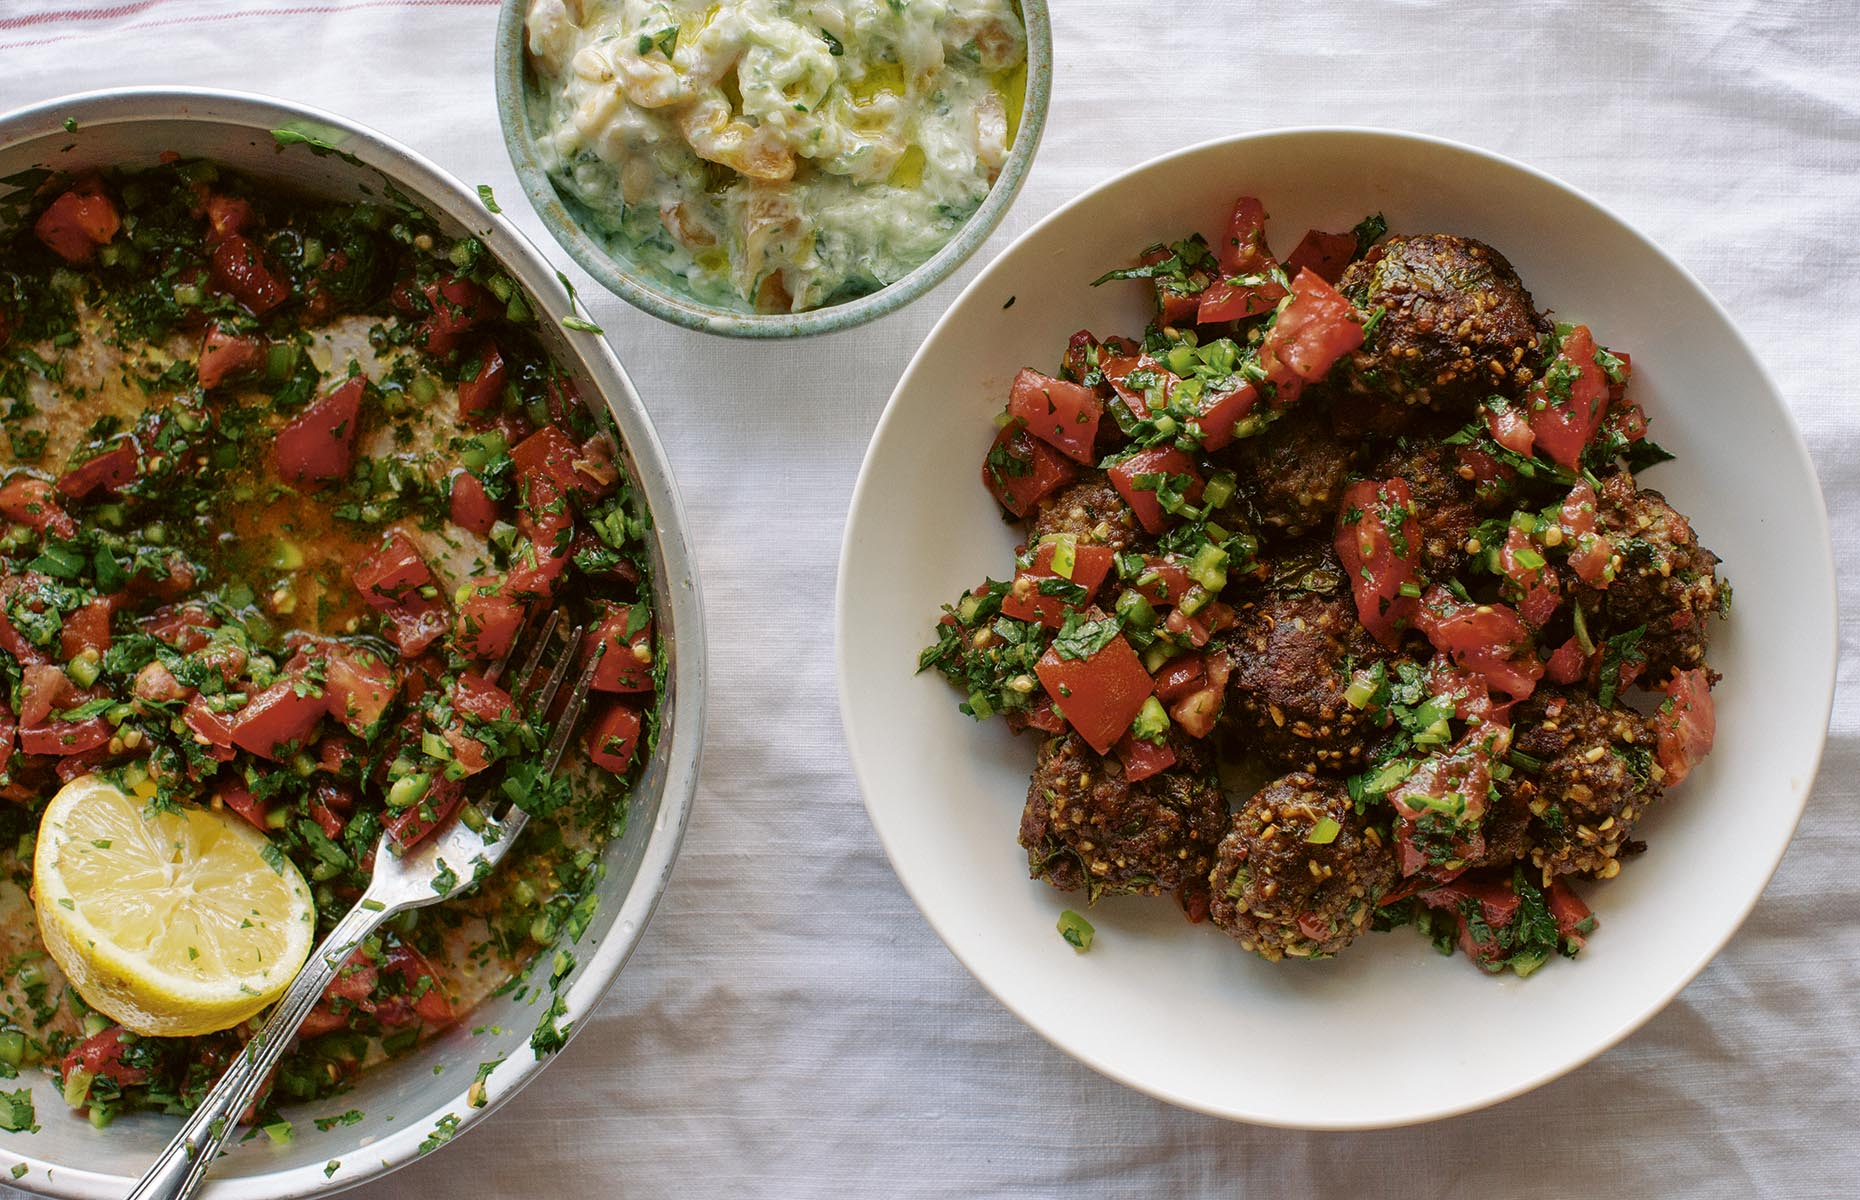 Lamb kofte with parsley salad (Image: Aegean/Kyle Books)